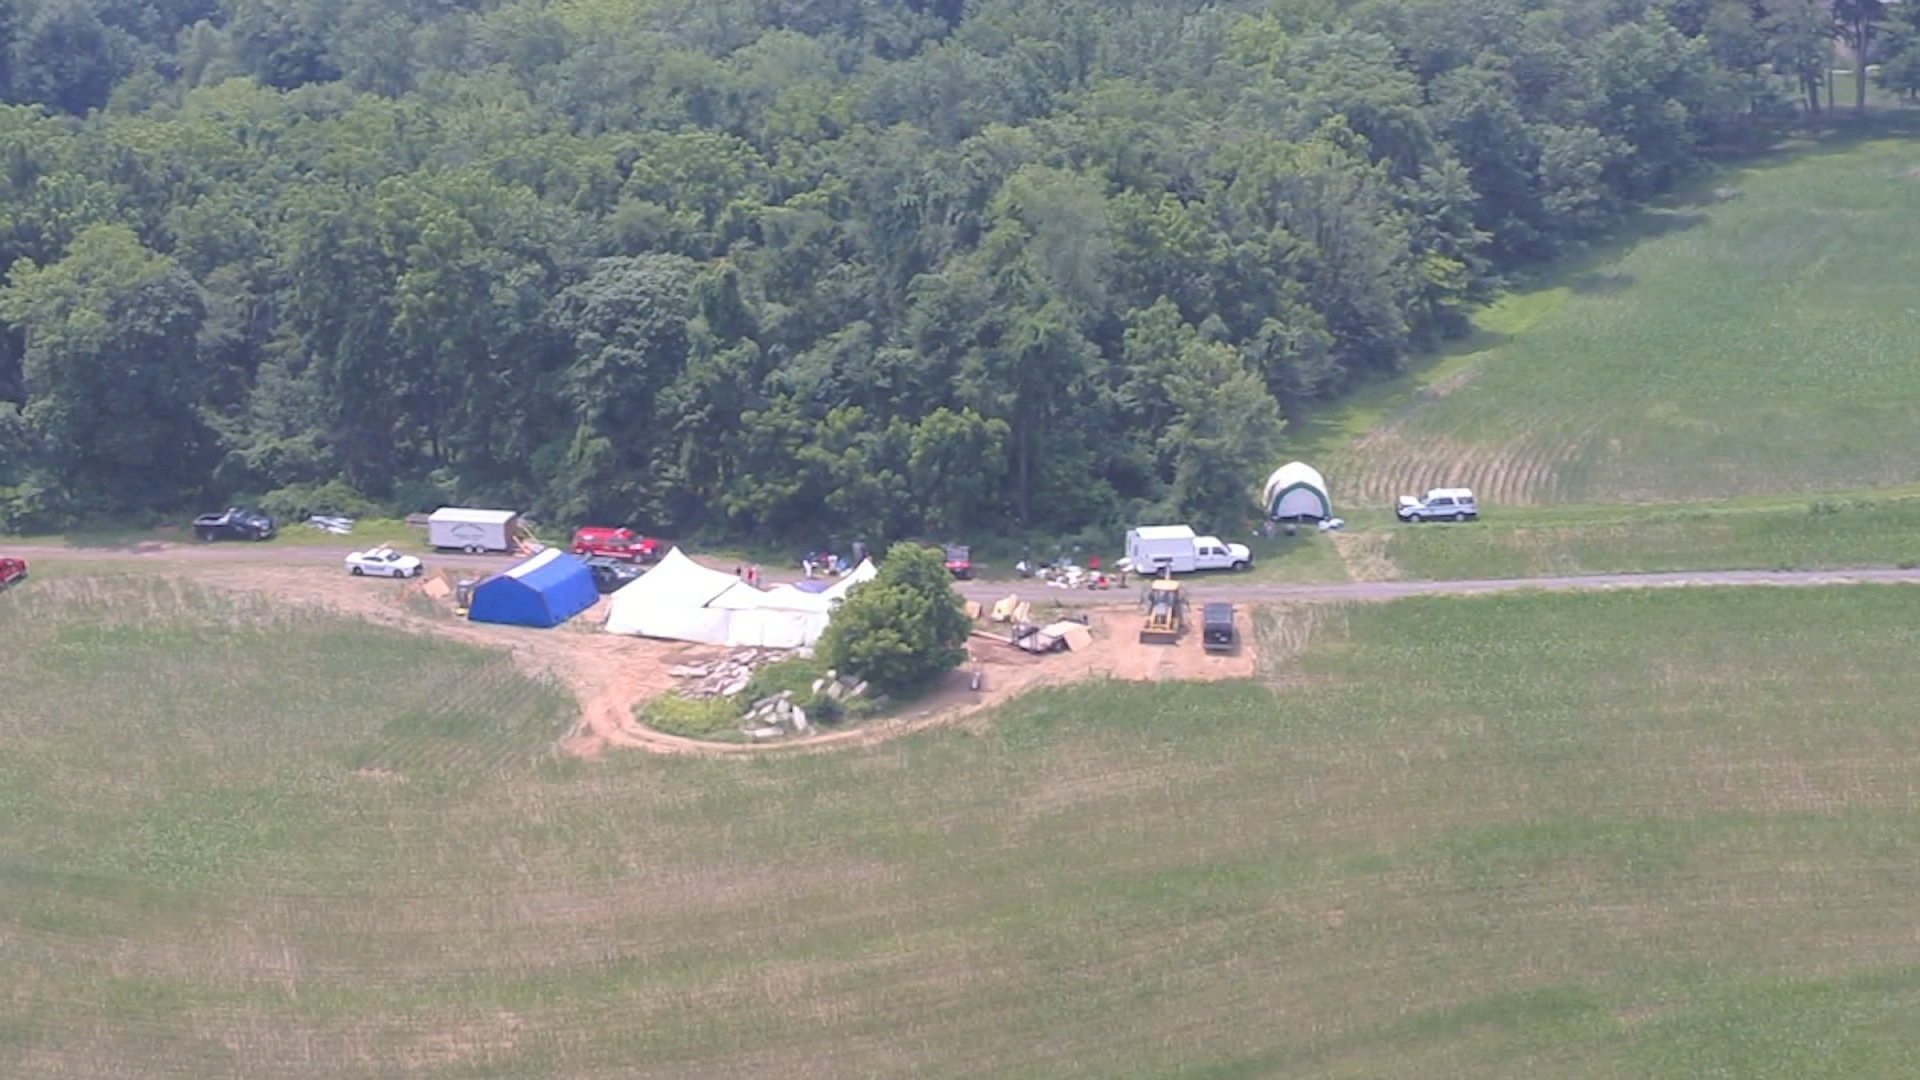 Investigators are painstakingly excavating the 12.5-foot-deep grave where the body of one of four missing men and other human remains were found, Bucks County District Attorney Matthew Weintraub said Thursday.